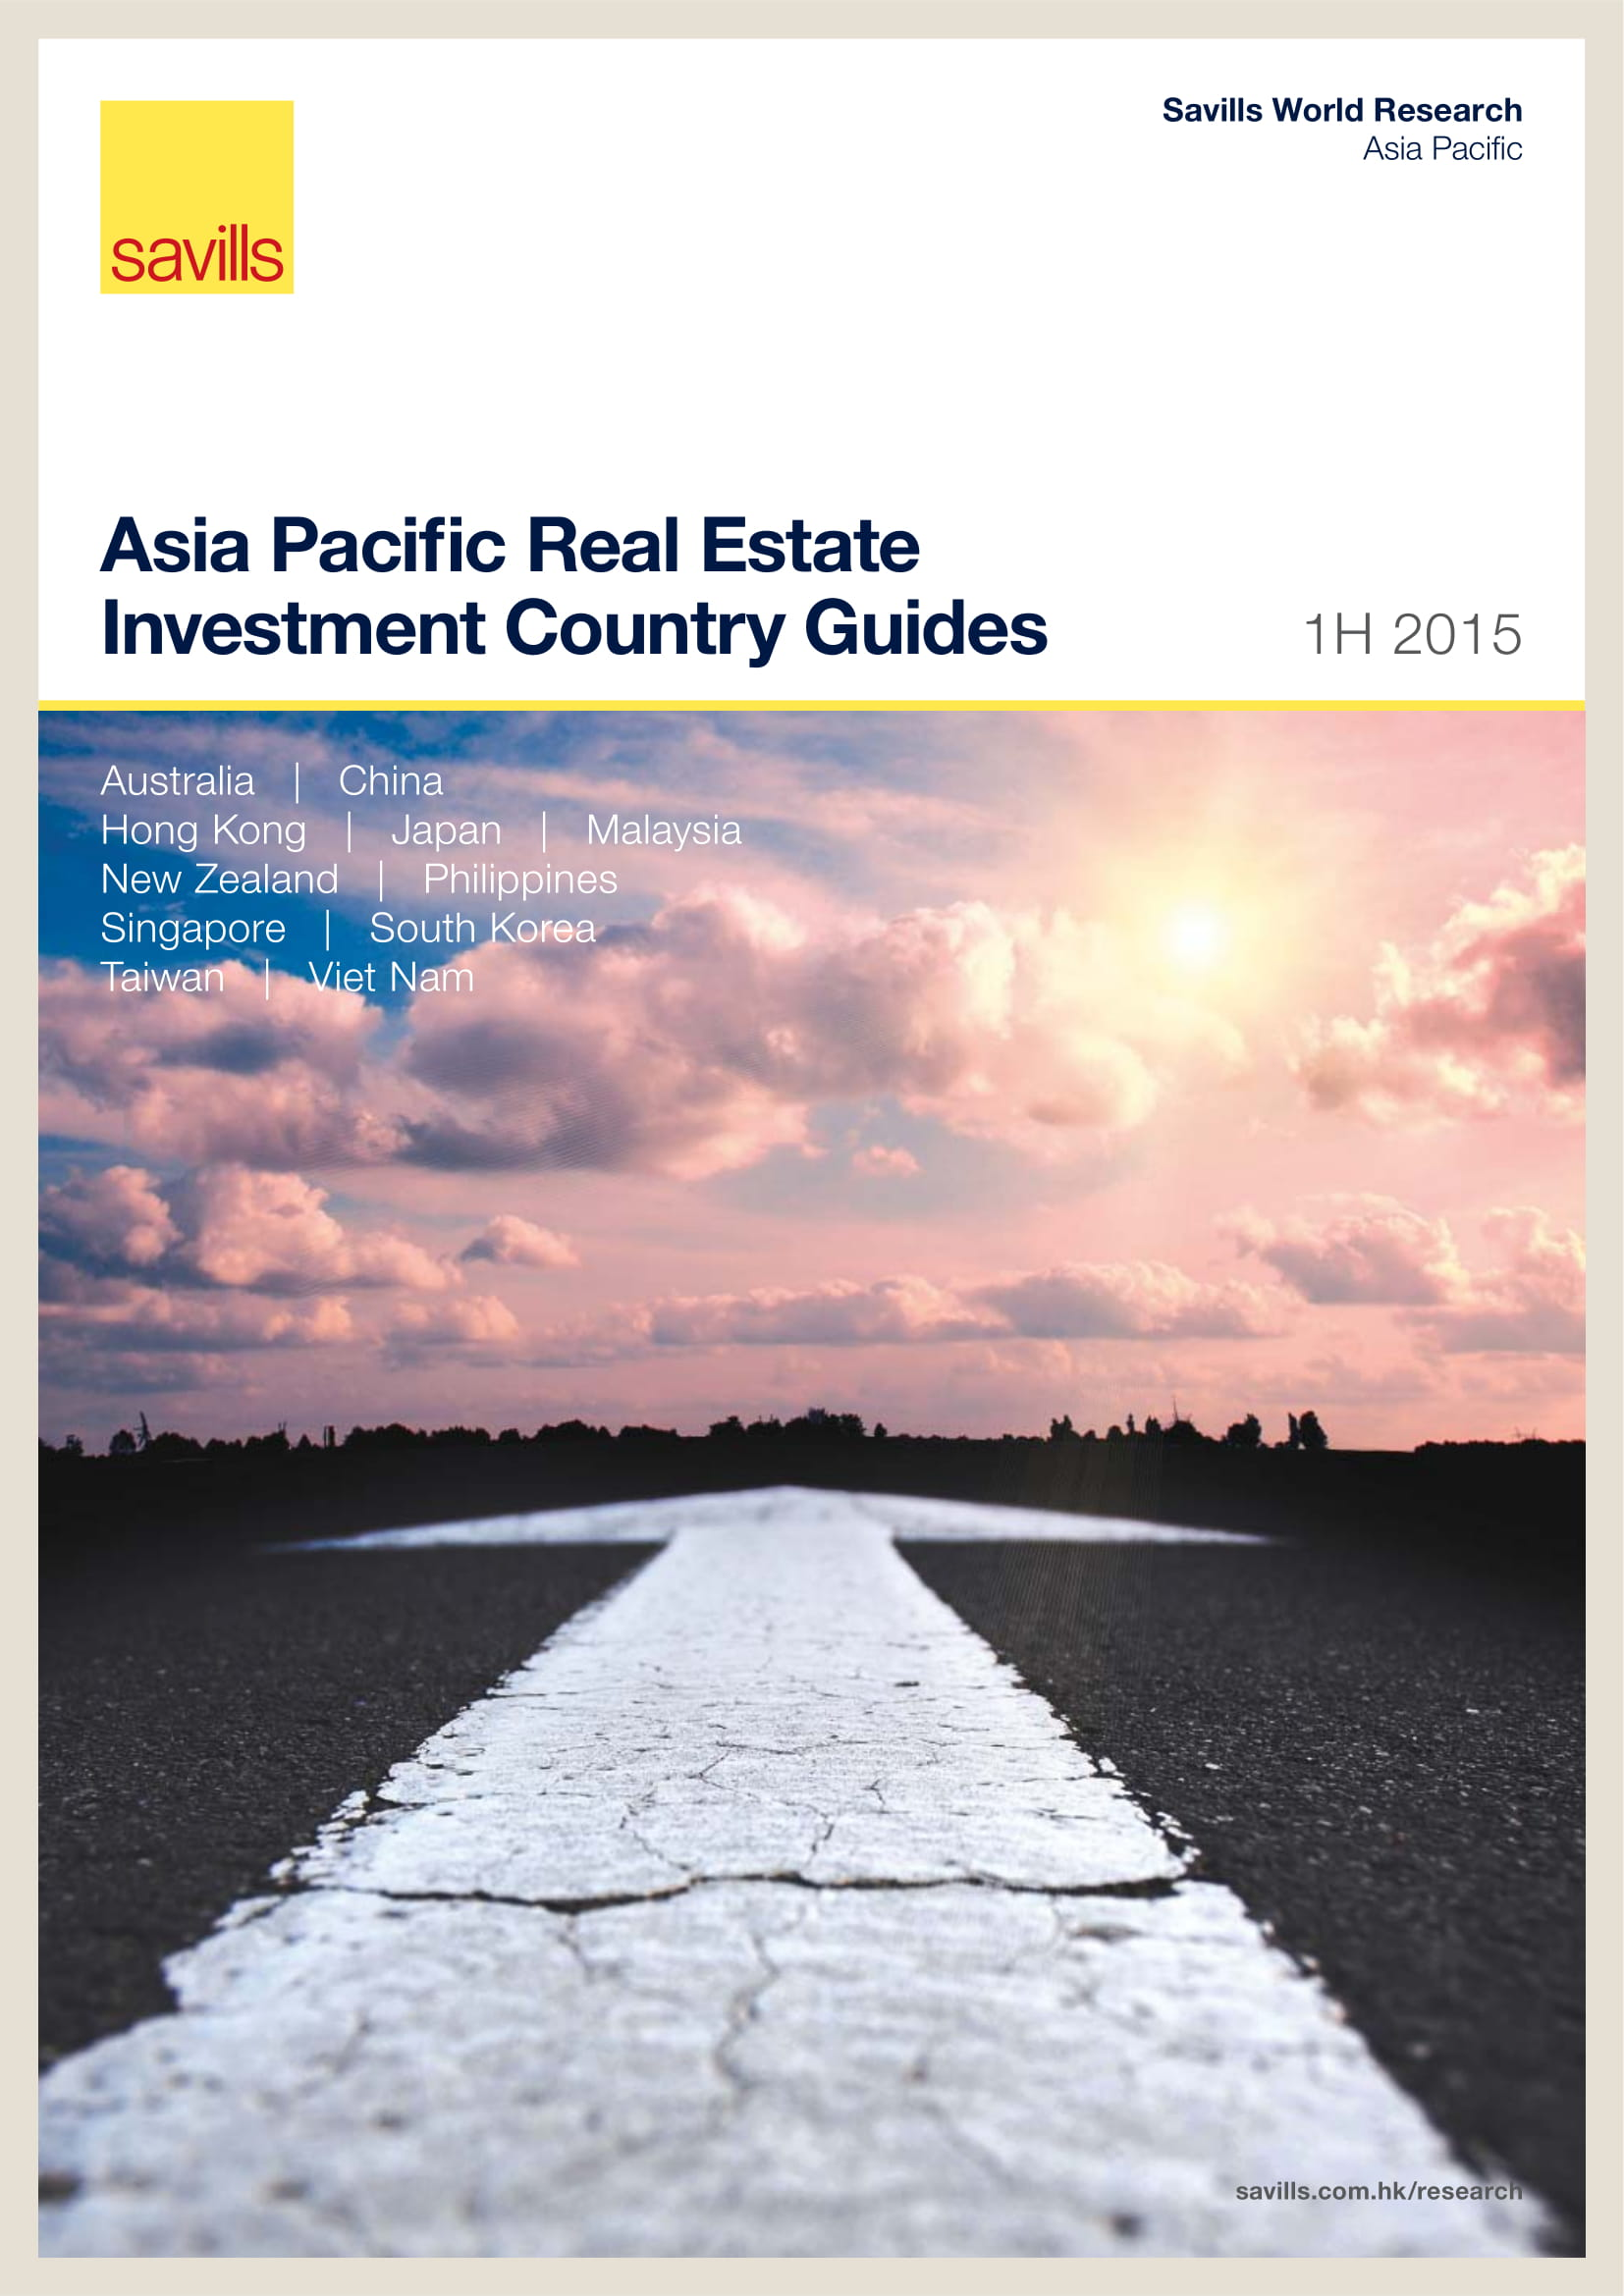 Asia Pacific Real Estate Investment Country Guides 1H 2015